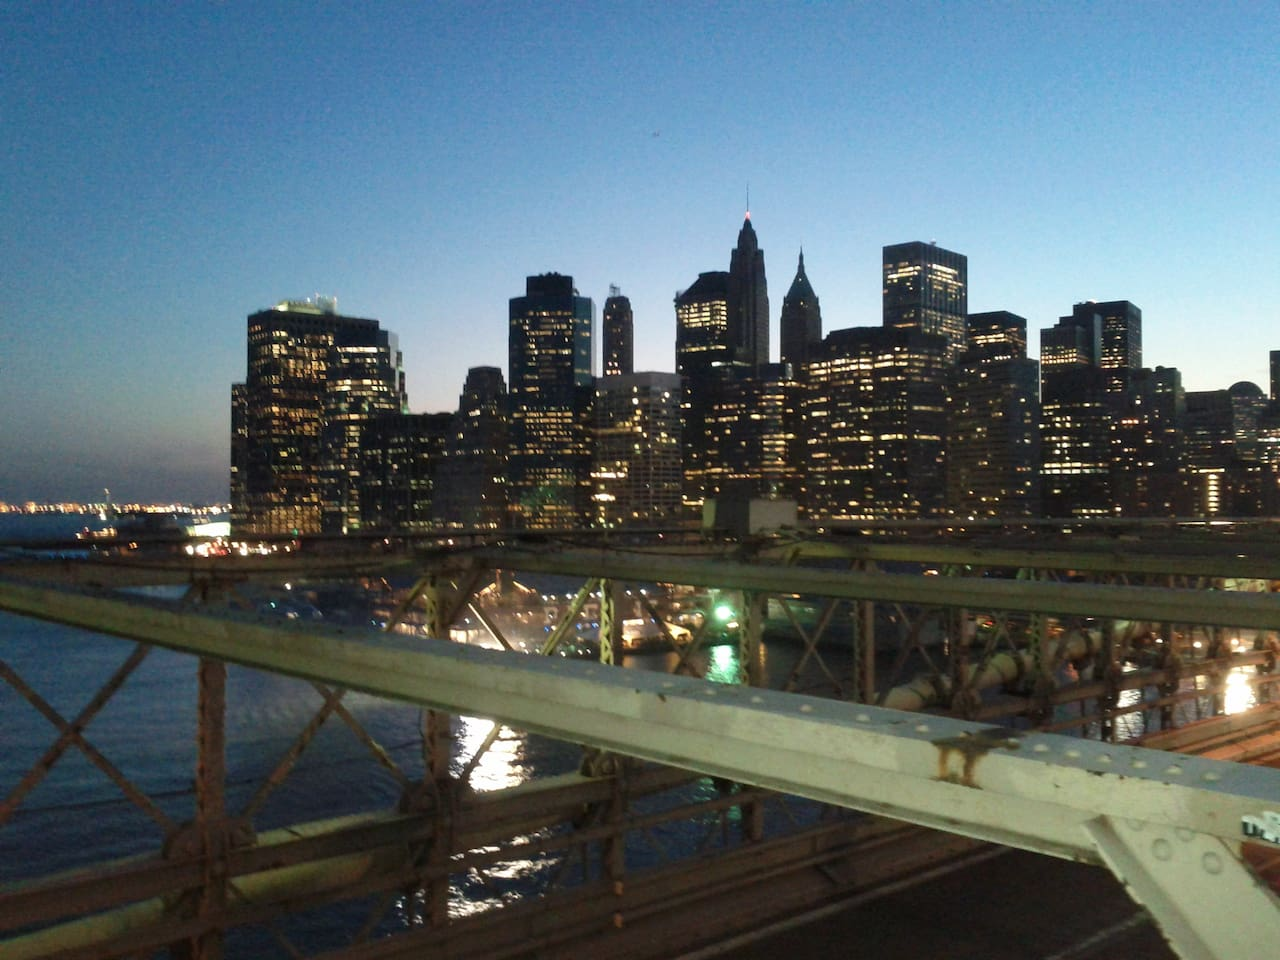 View from the Brooklyn Bridge, less than a mile away